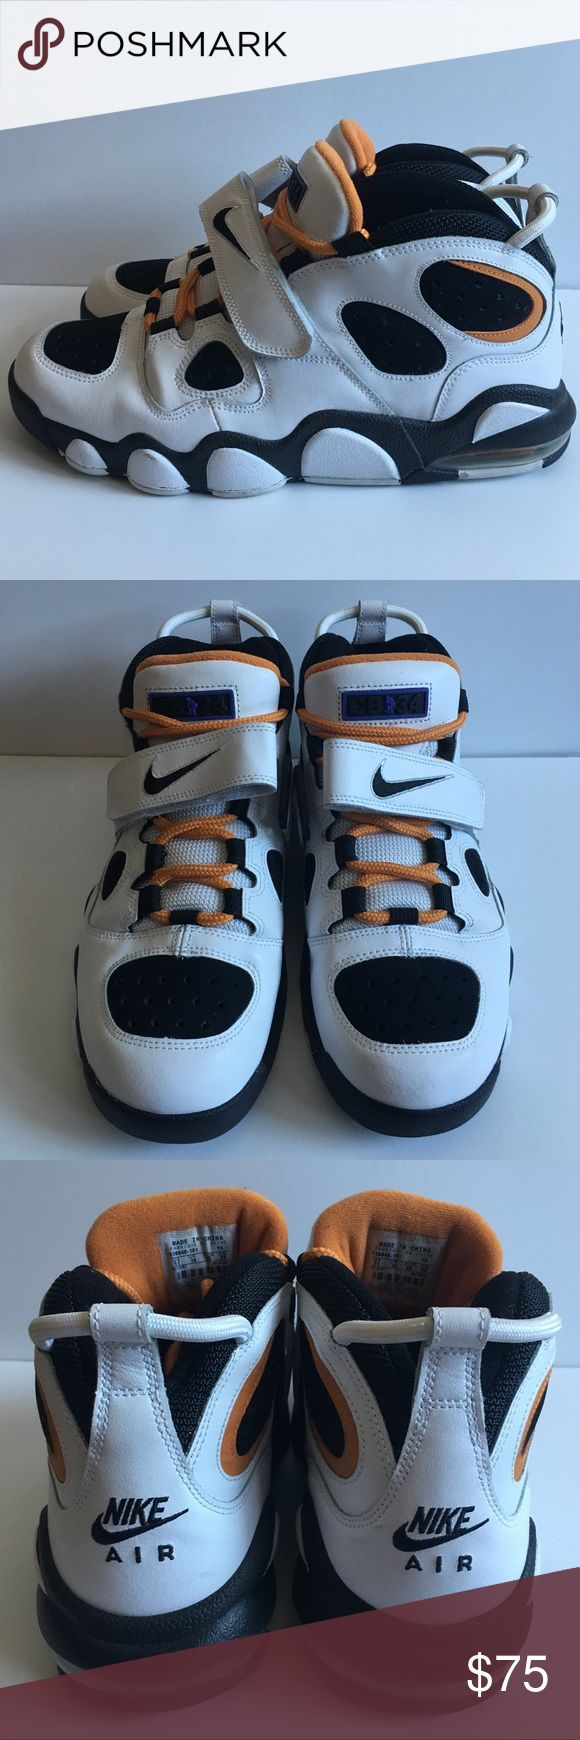 Nike Air Max Charles Barkley men's size 11 Nike Air Max Charles Barkley men's size 11. Great condition worn 2x. Nike Shoes Athletic Shoes